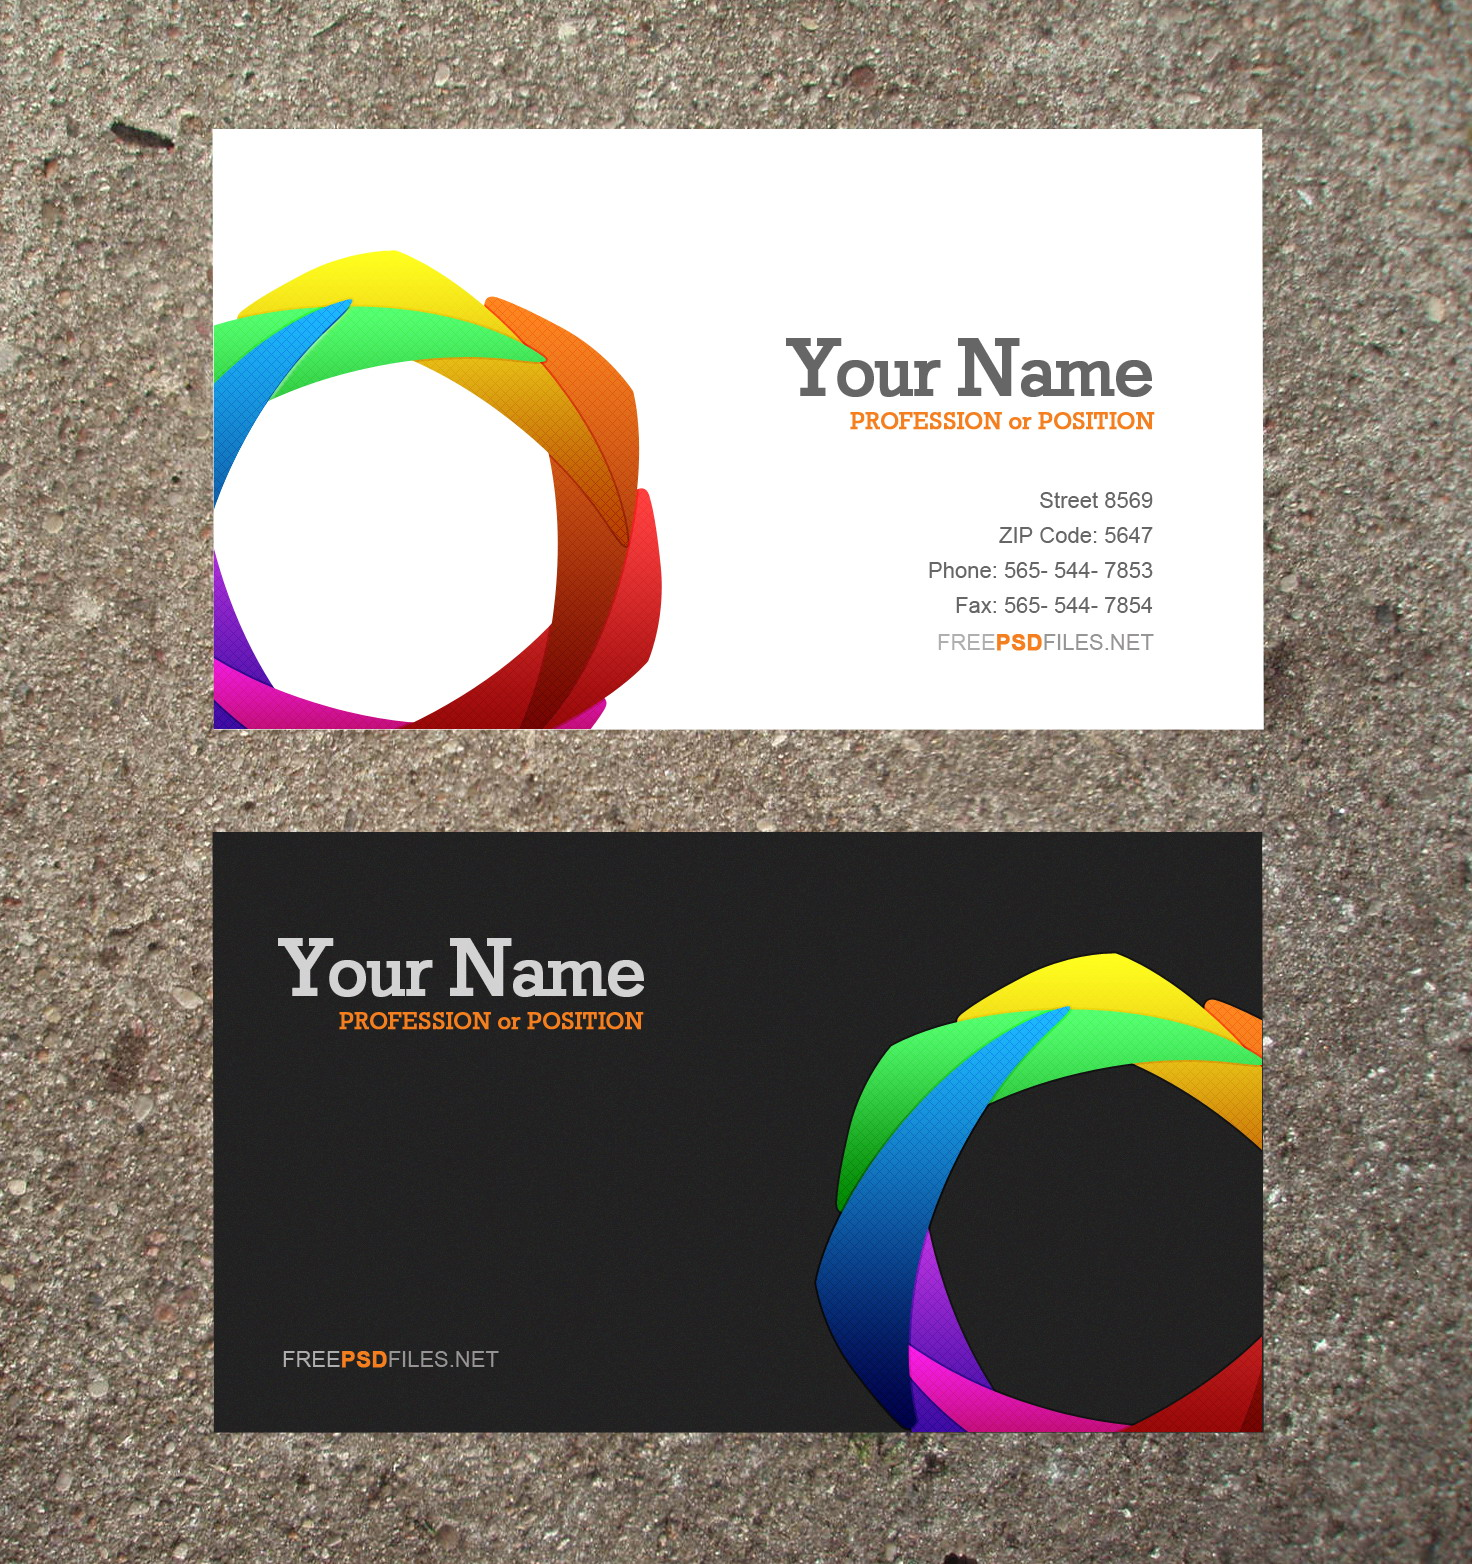 Free business card template 28 images business card templates 10 modern business card psd template free images free friedricerecipe Image collections